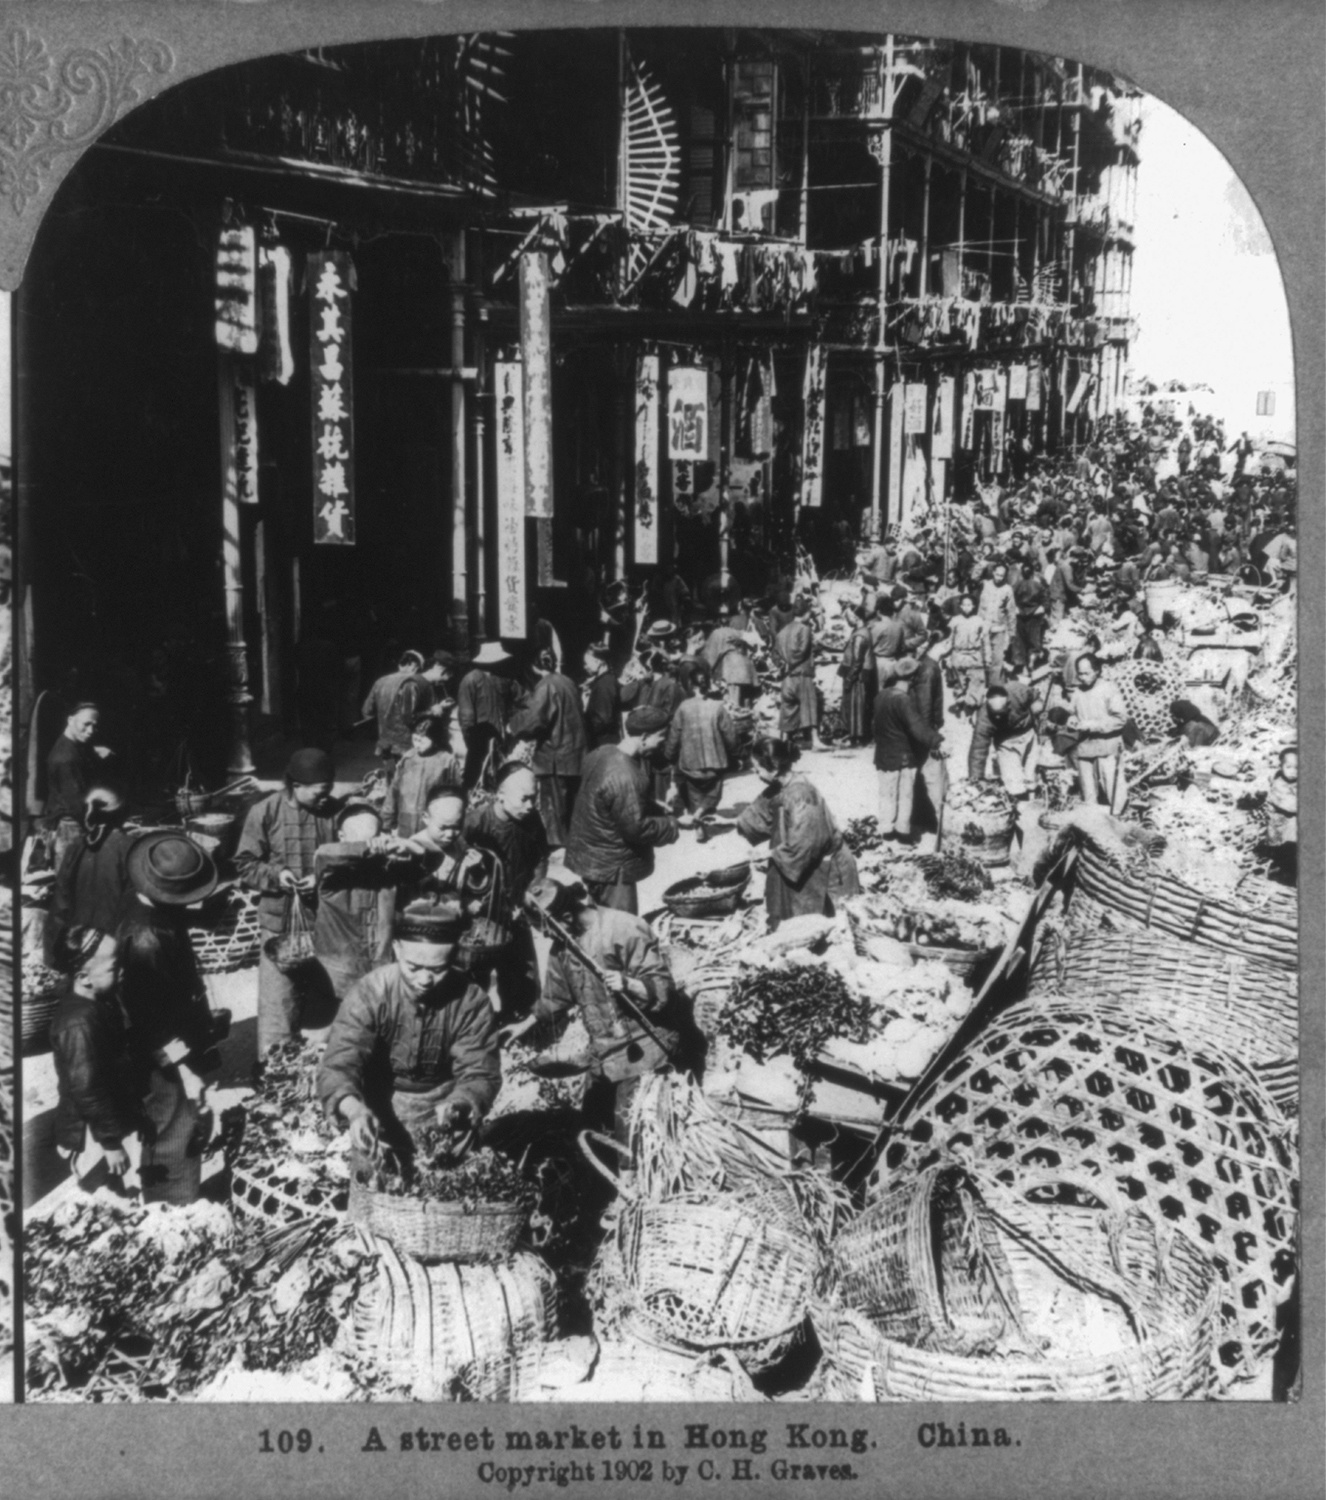 Street market in Hong Kong, 1902. Courtesy of the Library of Congress.